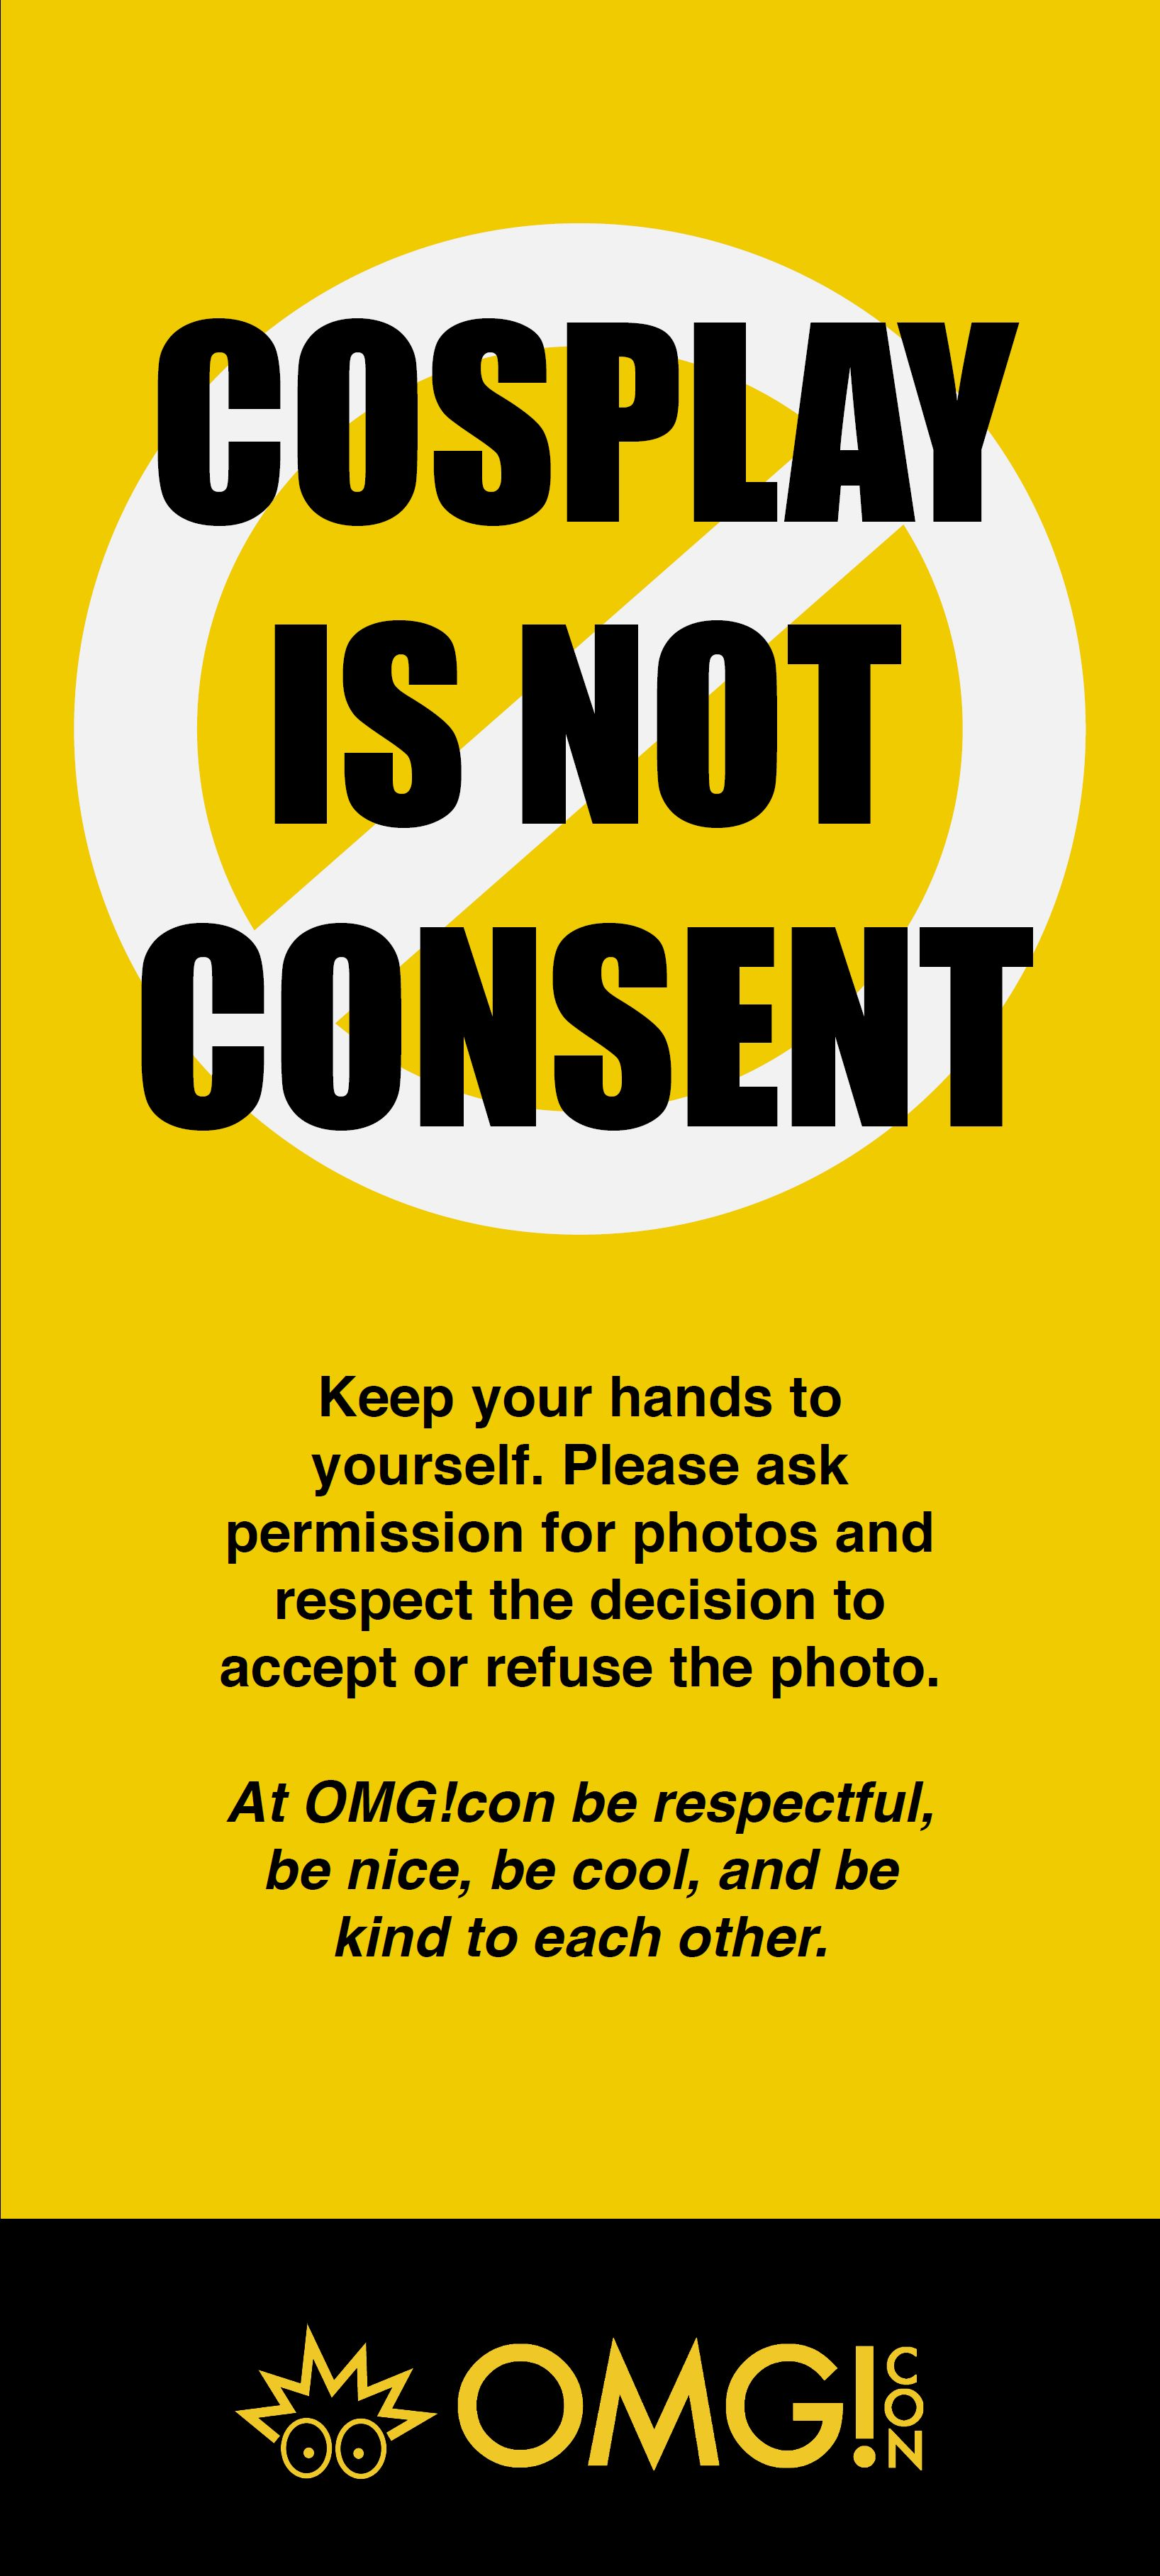 Cosplay Is Not Consent - OMG!con is a proud believer in Cosplay Is Not Consent and that harassment is an issue that we have ZERO tolerance with. All attendees need to acquire consent before photographing, recording or touching a cosplayer or other attendee.If at any point during our convention you are grabbed, harassed, or see any other person experiencing this treatment or behavior from another person, then please contact a staff member immediately. We appreciate the help and information attendees are able to give us. However, staff and Public Safety will handle the situation to the best of our ability and will contact the proper authorities if necessary.Everyone is at the convention to have fun and make good memories. Let's do our best to keep it that way!